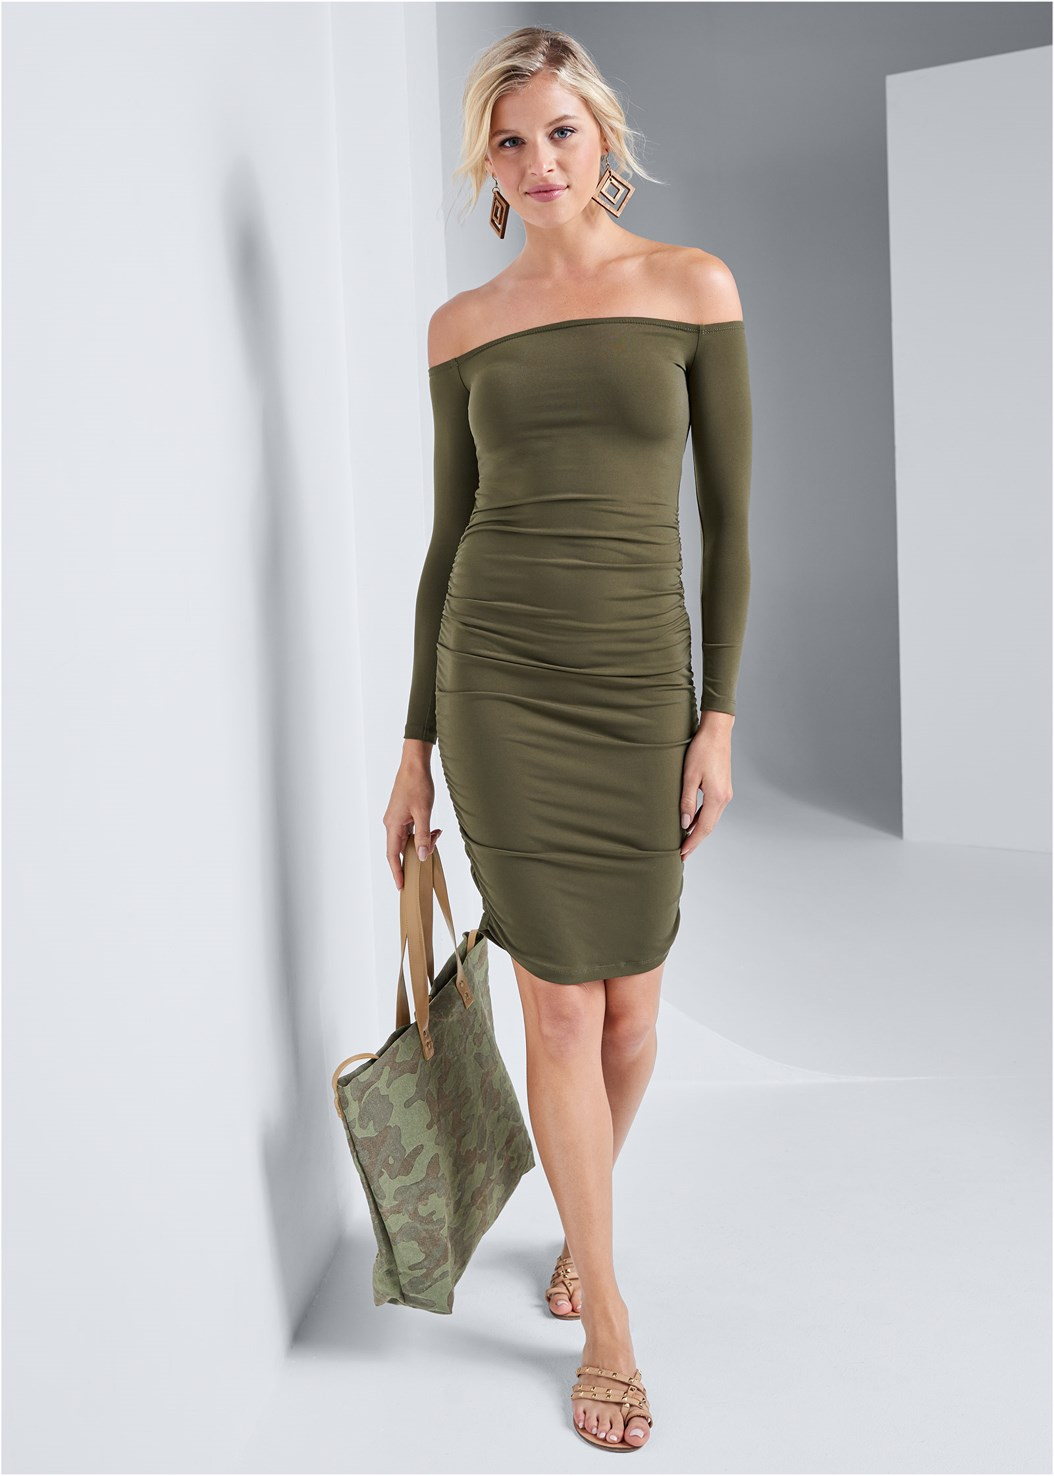 Ruched Off Shoulder Dress,Camo Tote Bag,Wood Earrings